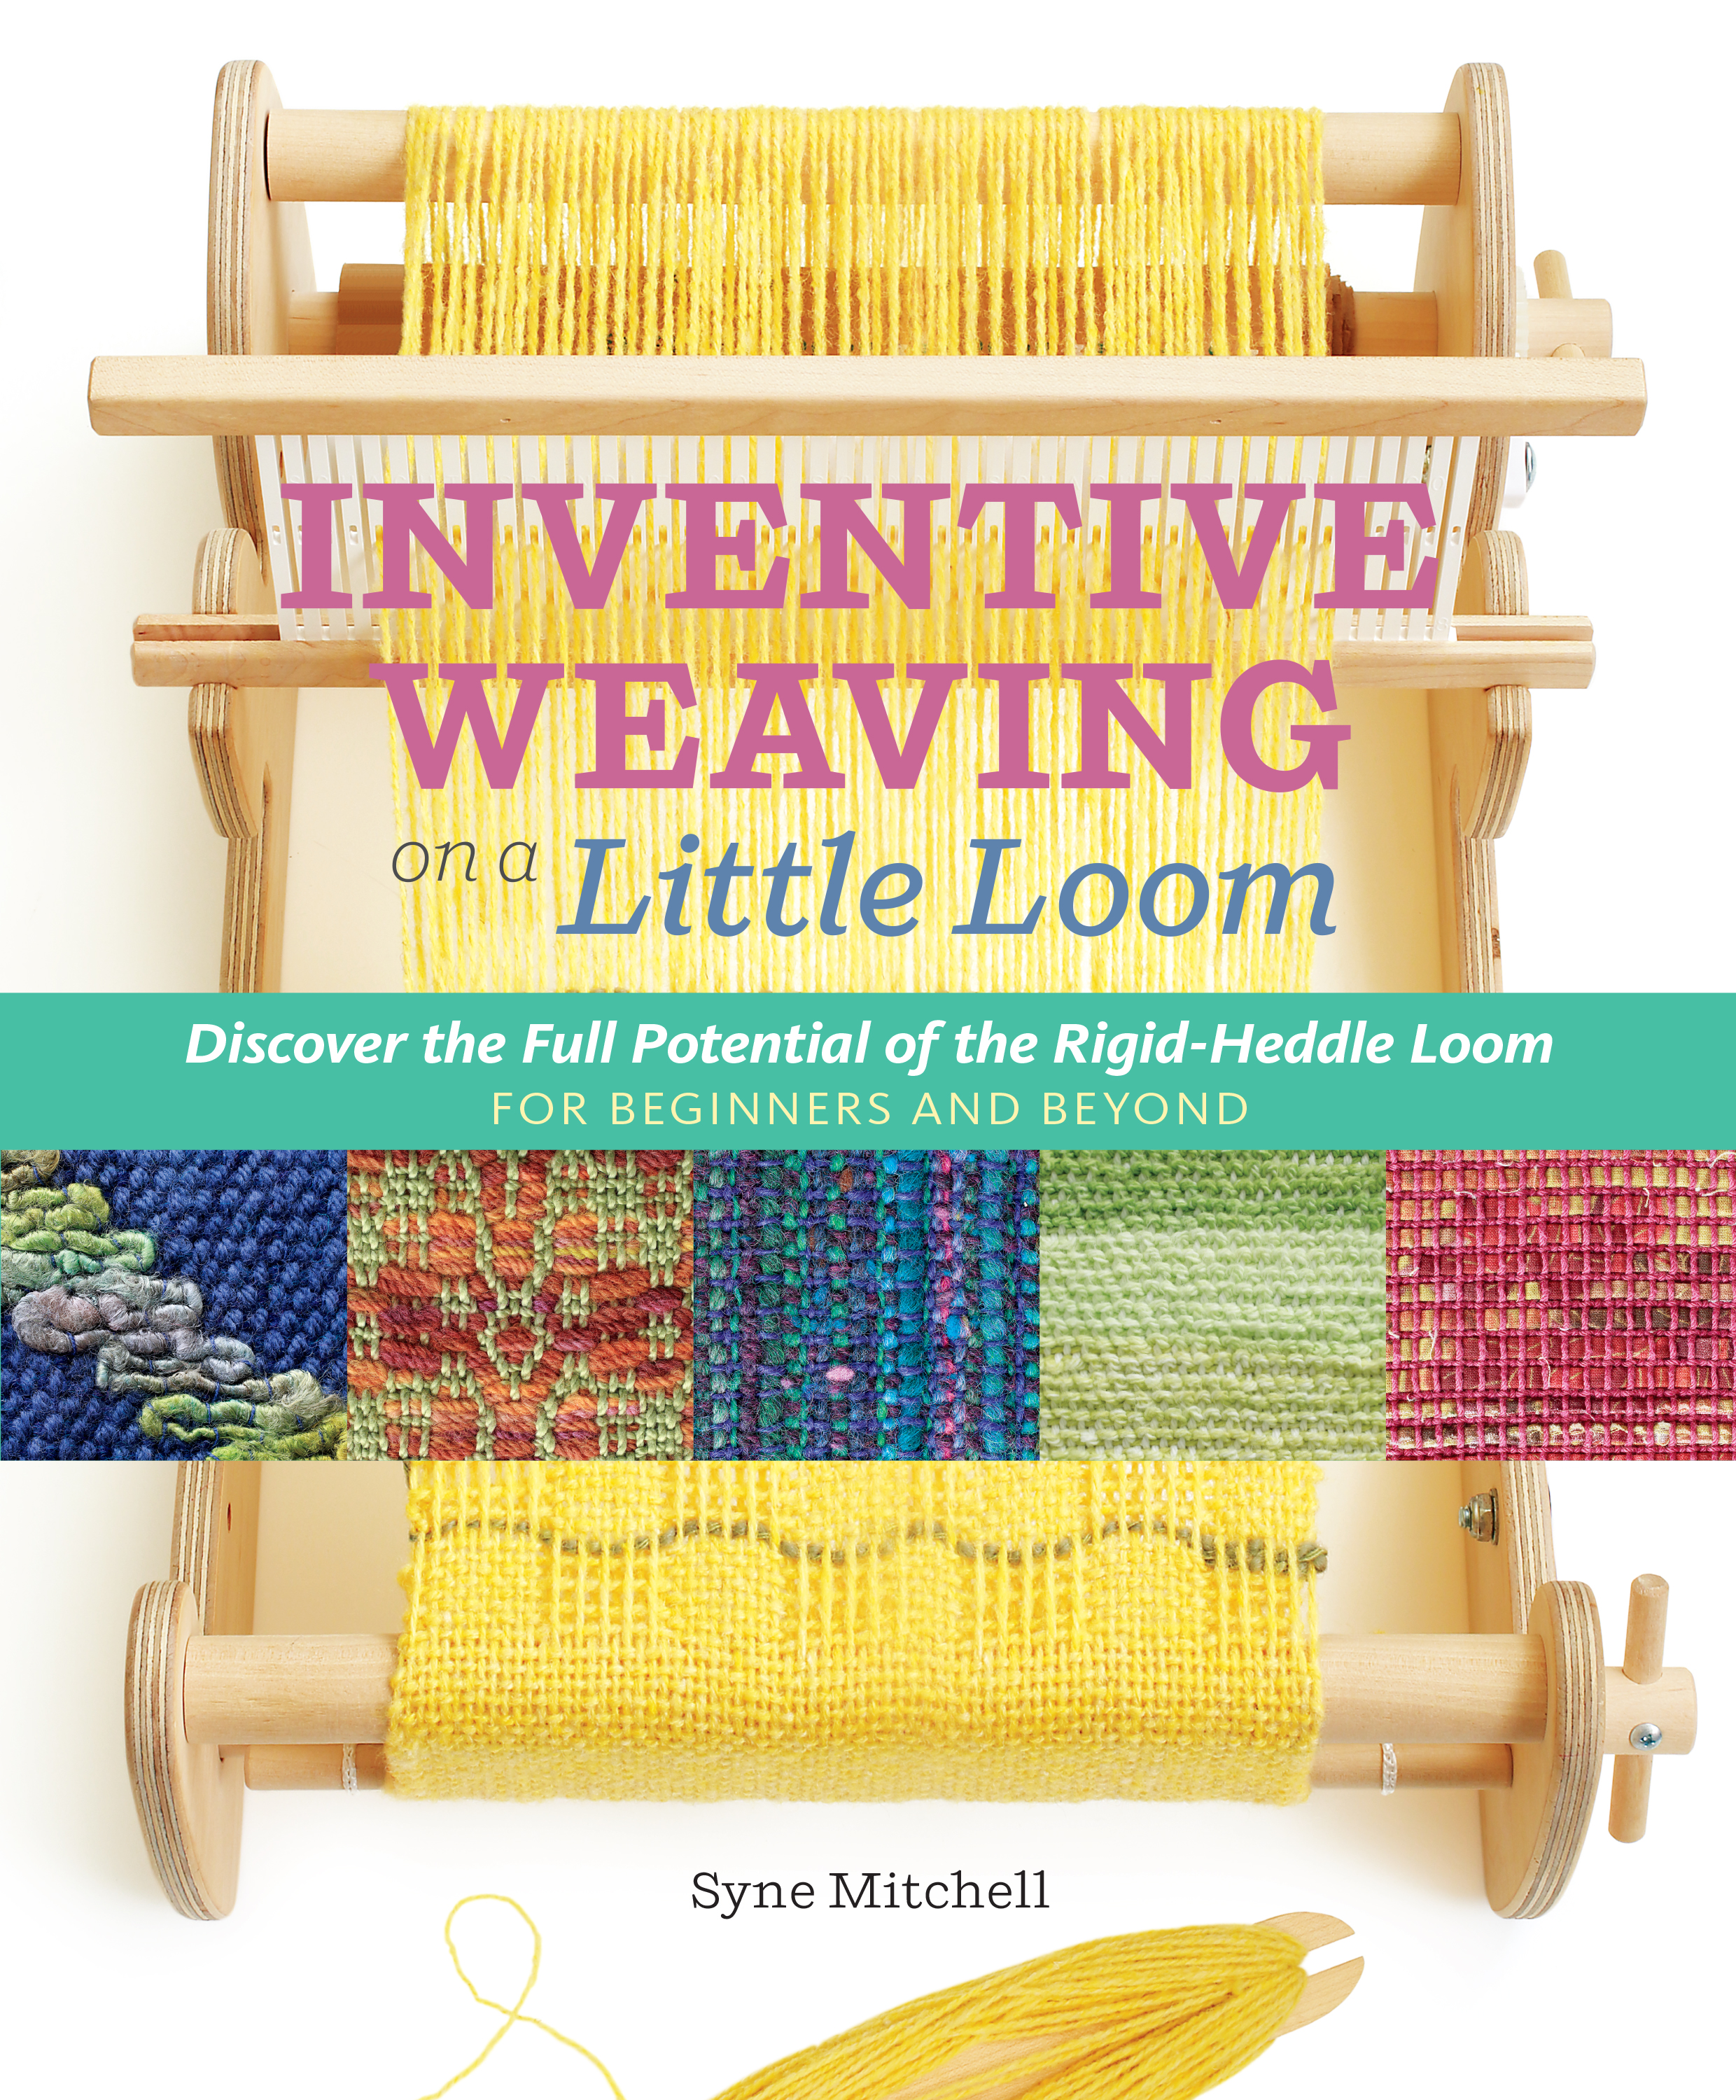 Inventive Weaving on a Little Loom Discover the Full Potential of the Rigid-Heddle Loom, for Beginners and Beyond - Syne Mitchell